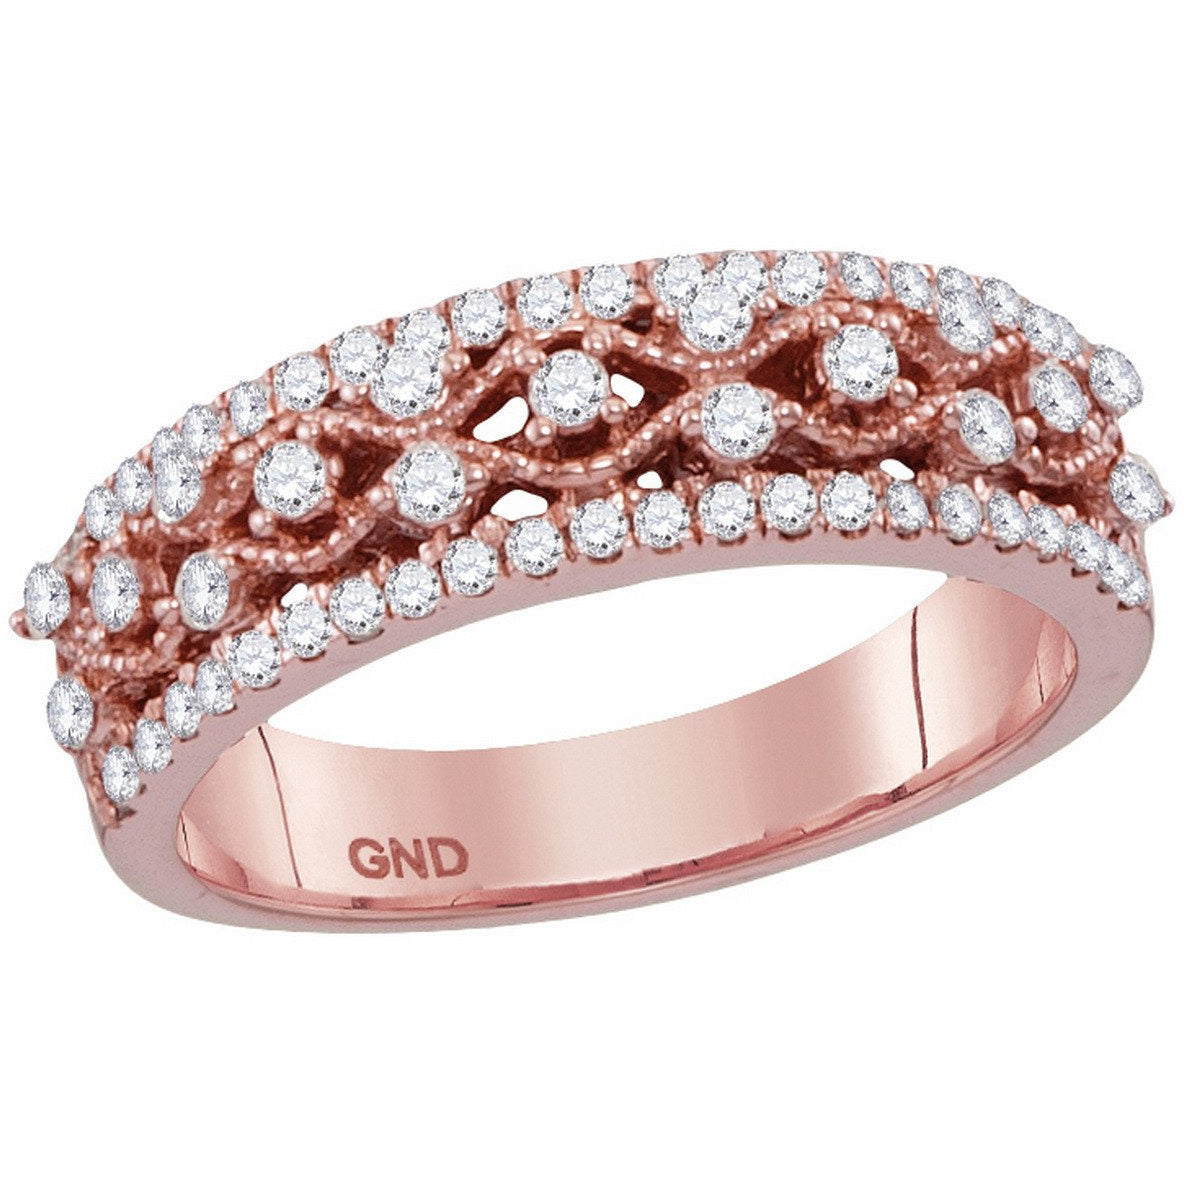 10kt Rose Gold Womens Round Diamond Roped Woven Band Ring 1/2 Cttw 113099 - shirin-diamonds